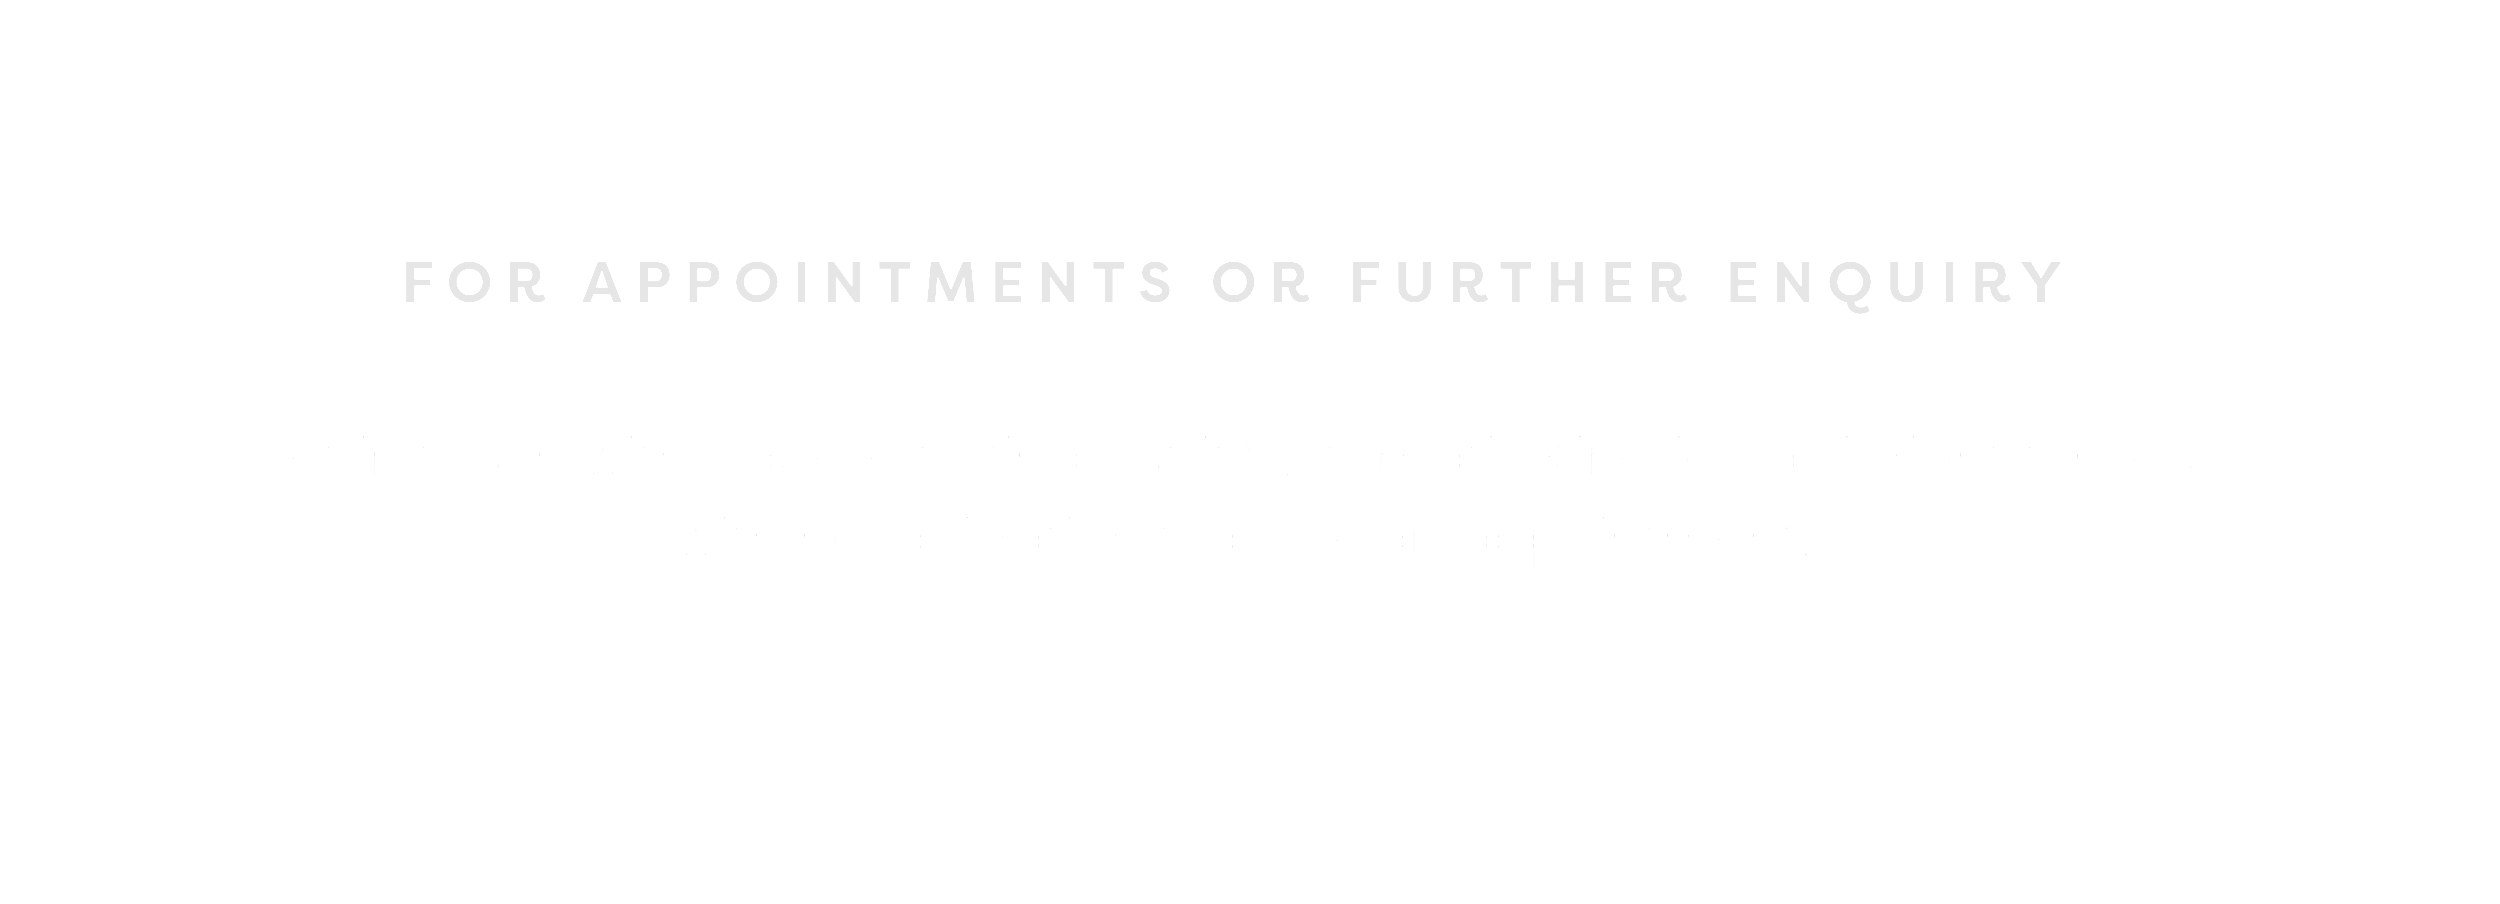 For appointments...2.png